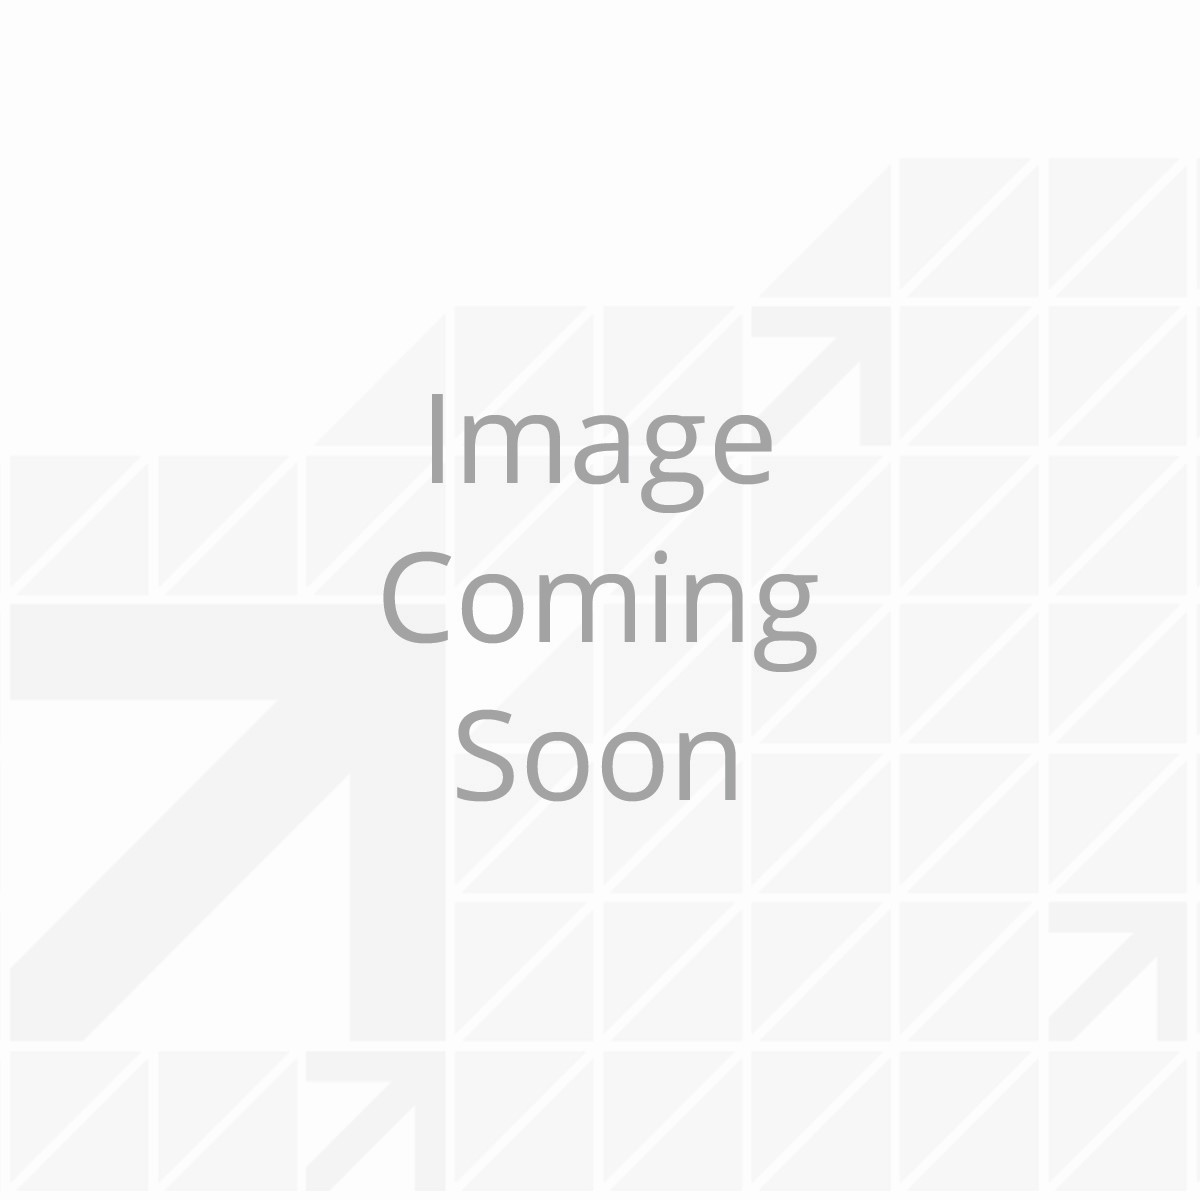 North Face Women's Zip-Up Jacket